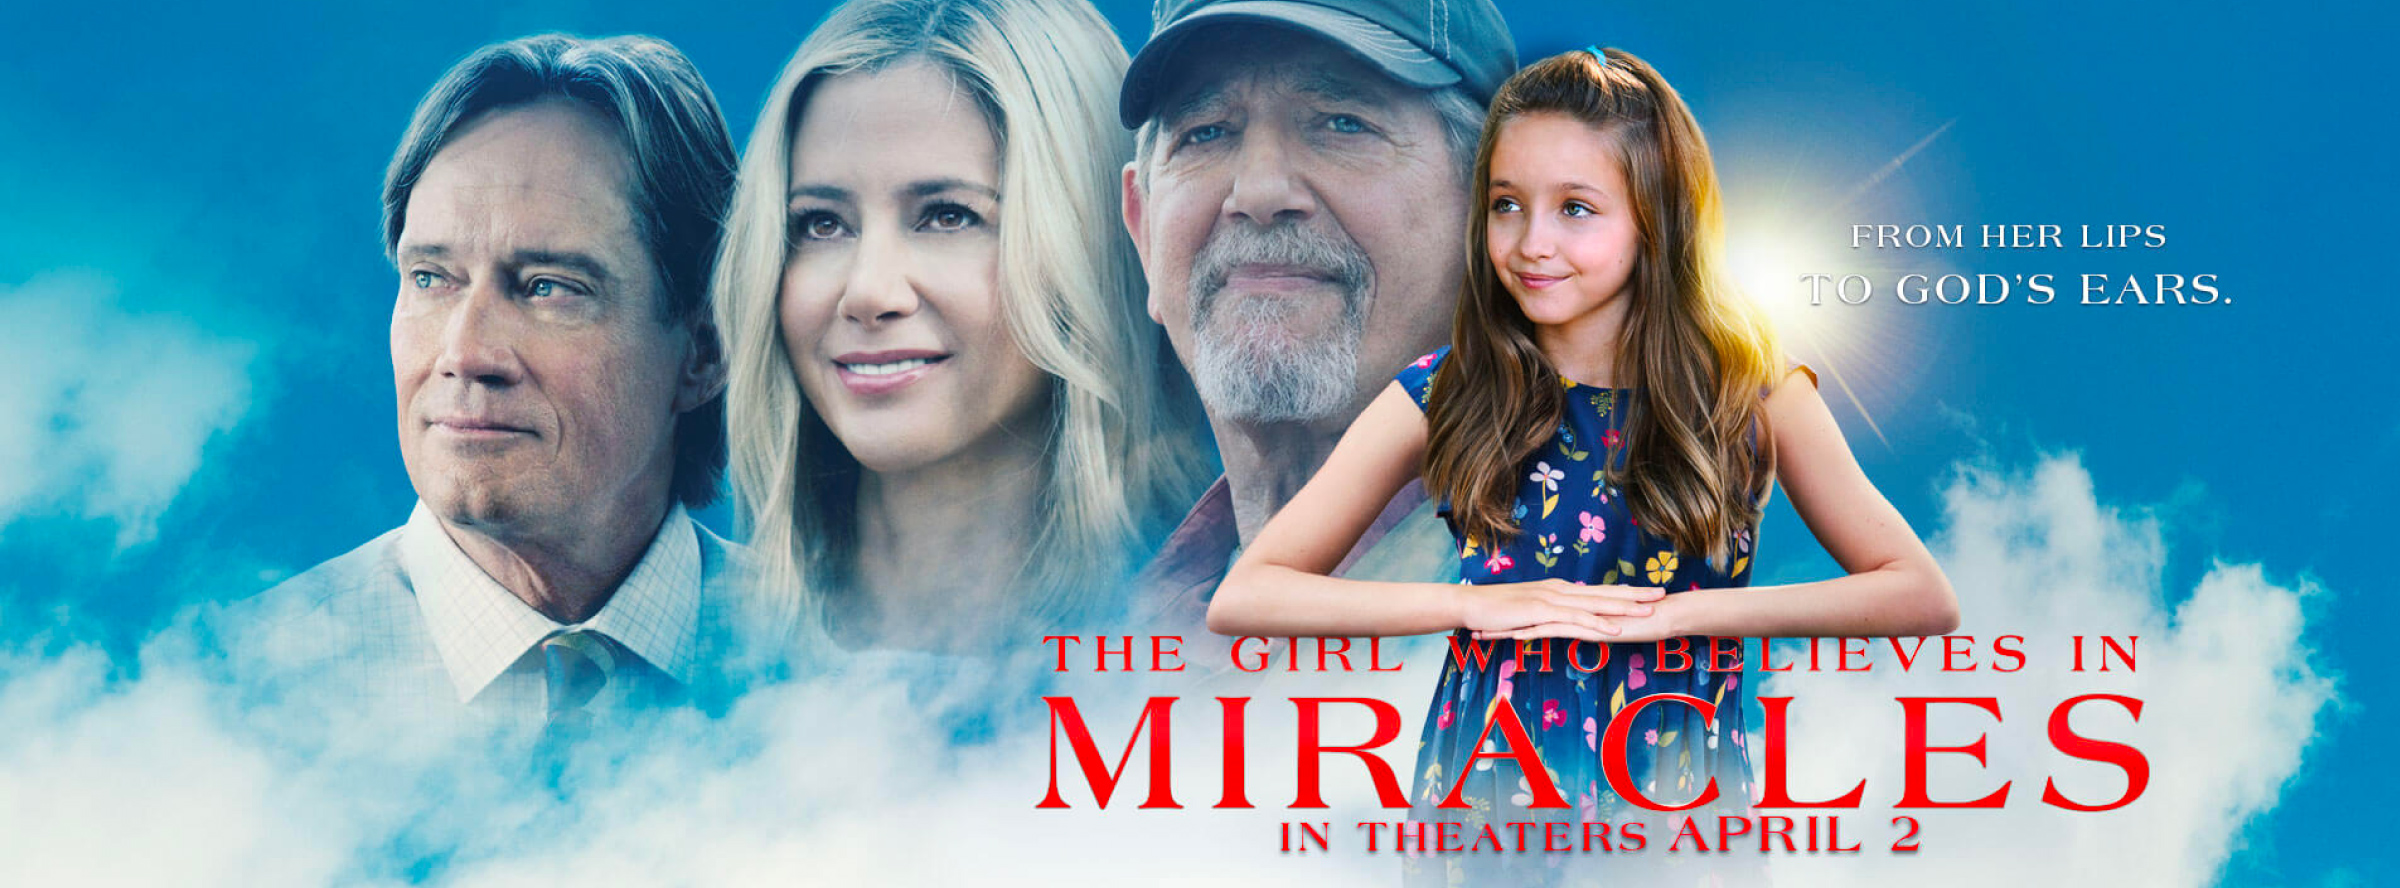 Slider Image for Girl Who Believes In Miracles, The